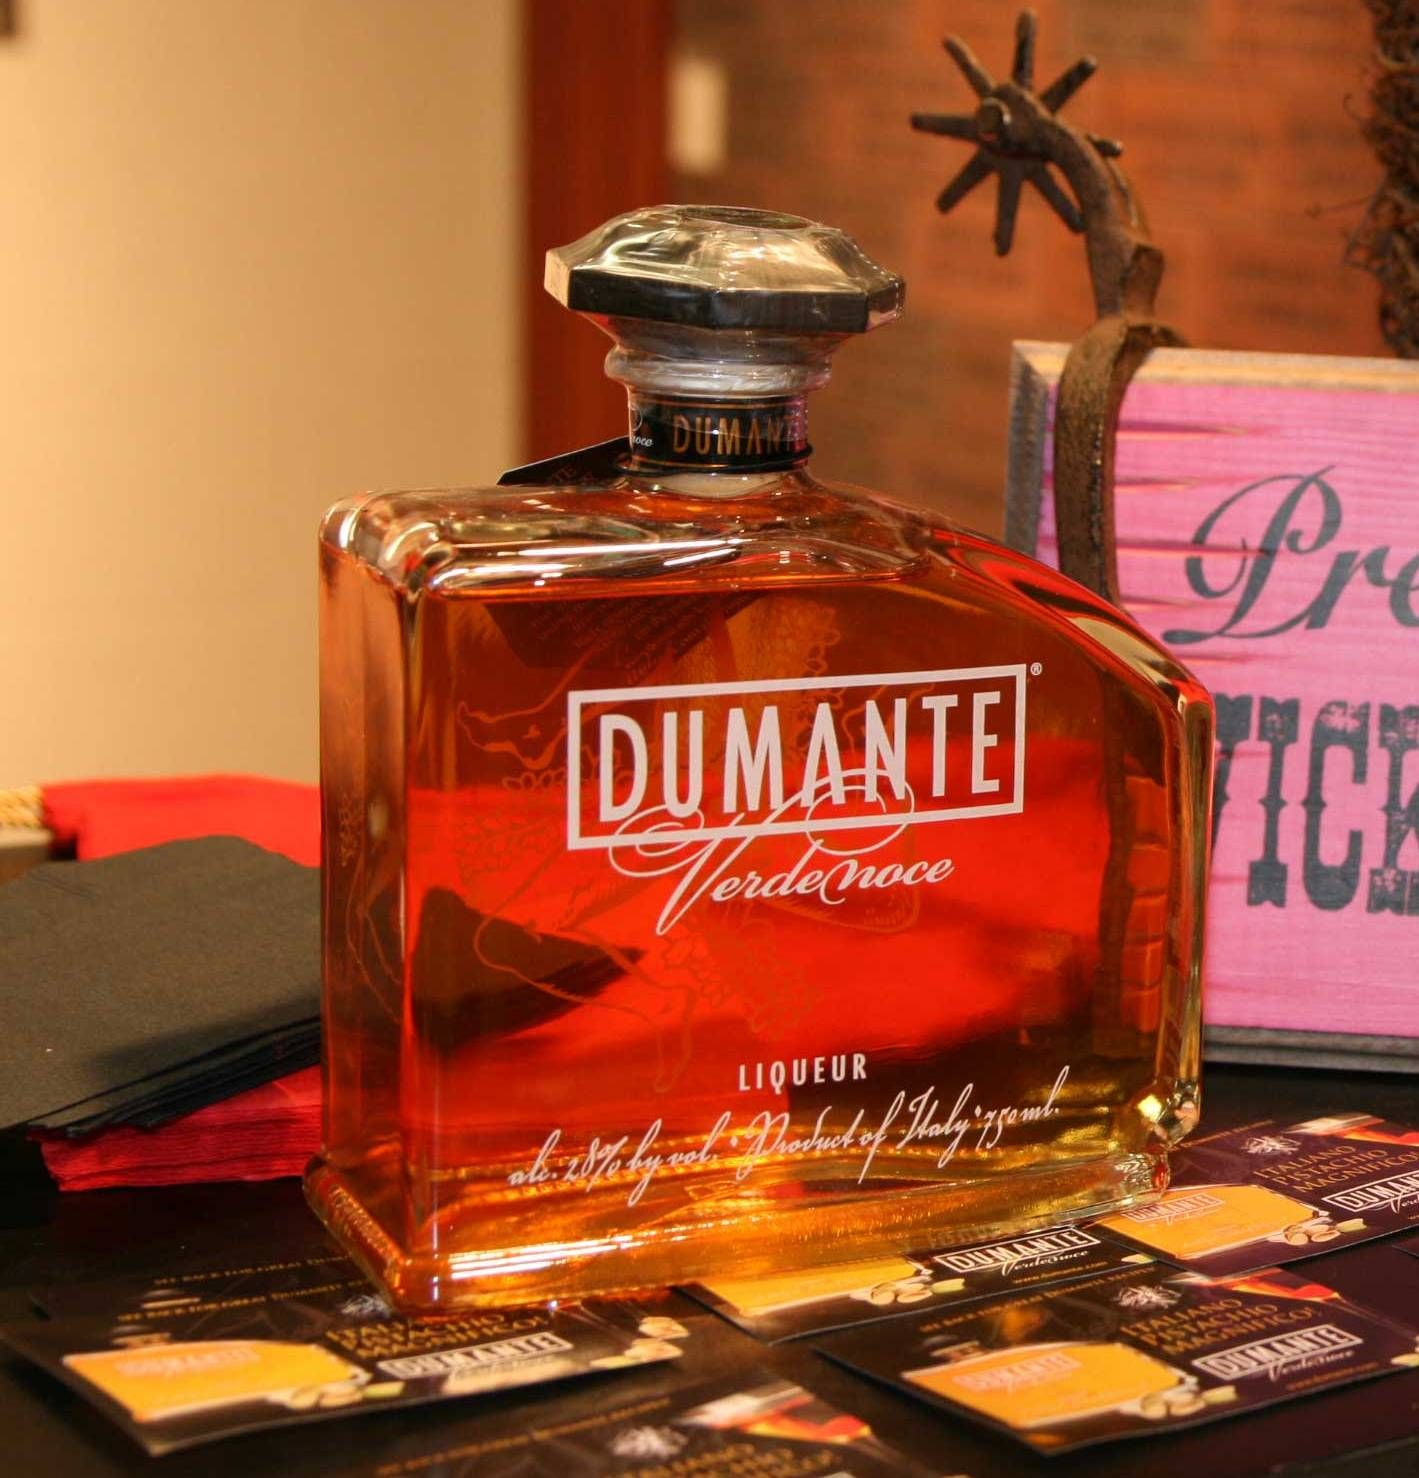 Did you know Dumante Verdenoce is gluten free? Oh yes, time to indulge!